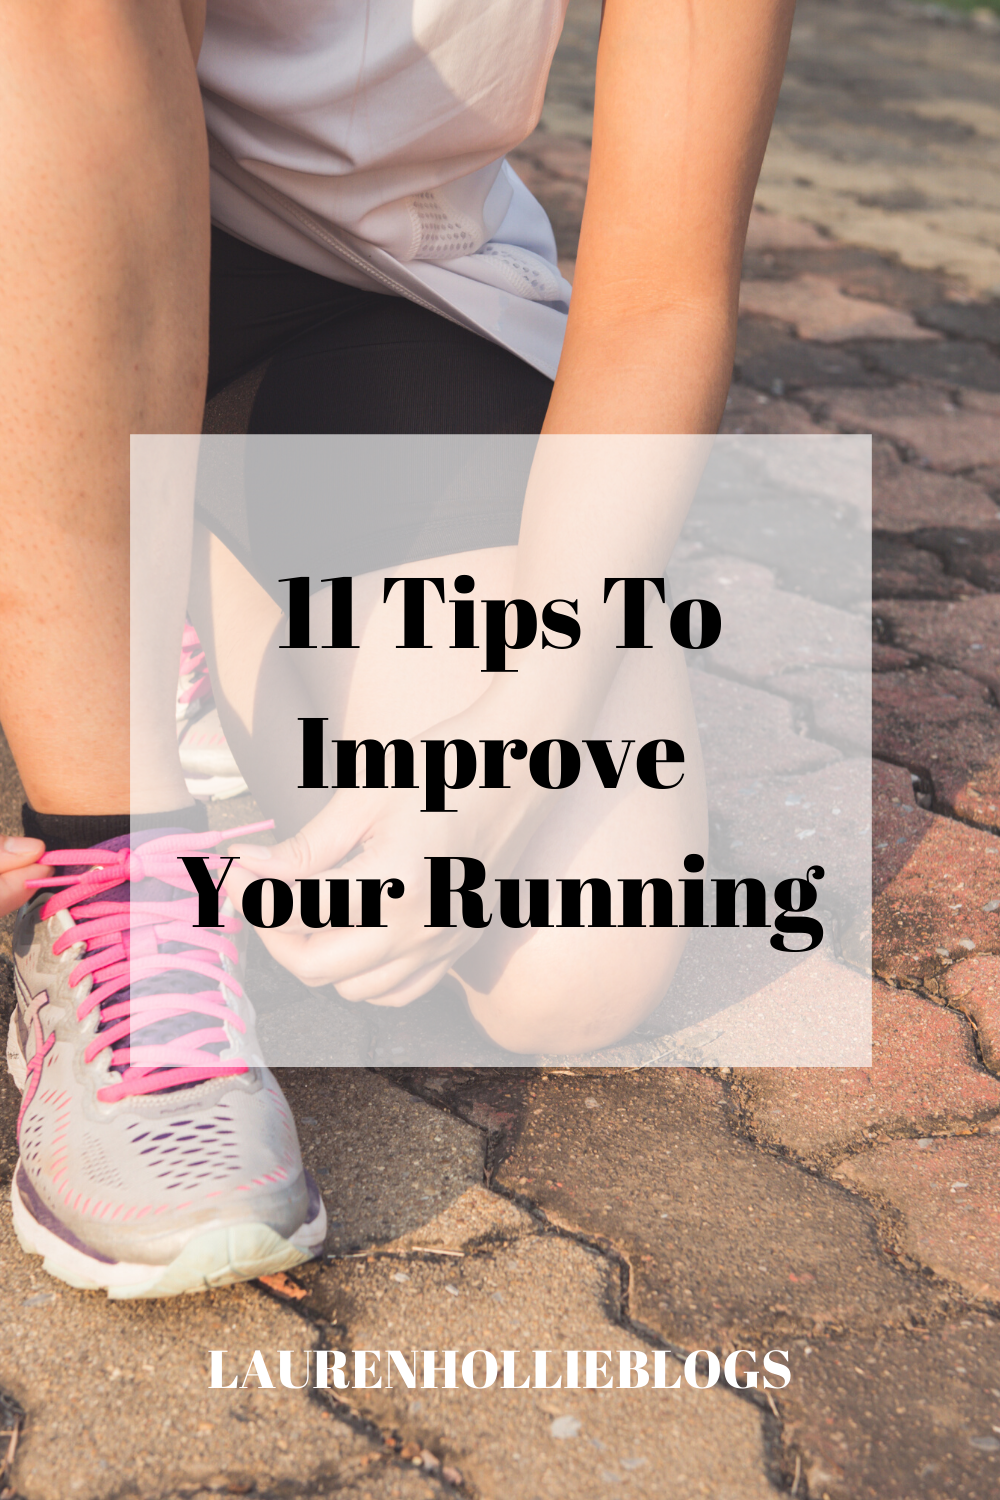 11 Tips To Improve Your Running